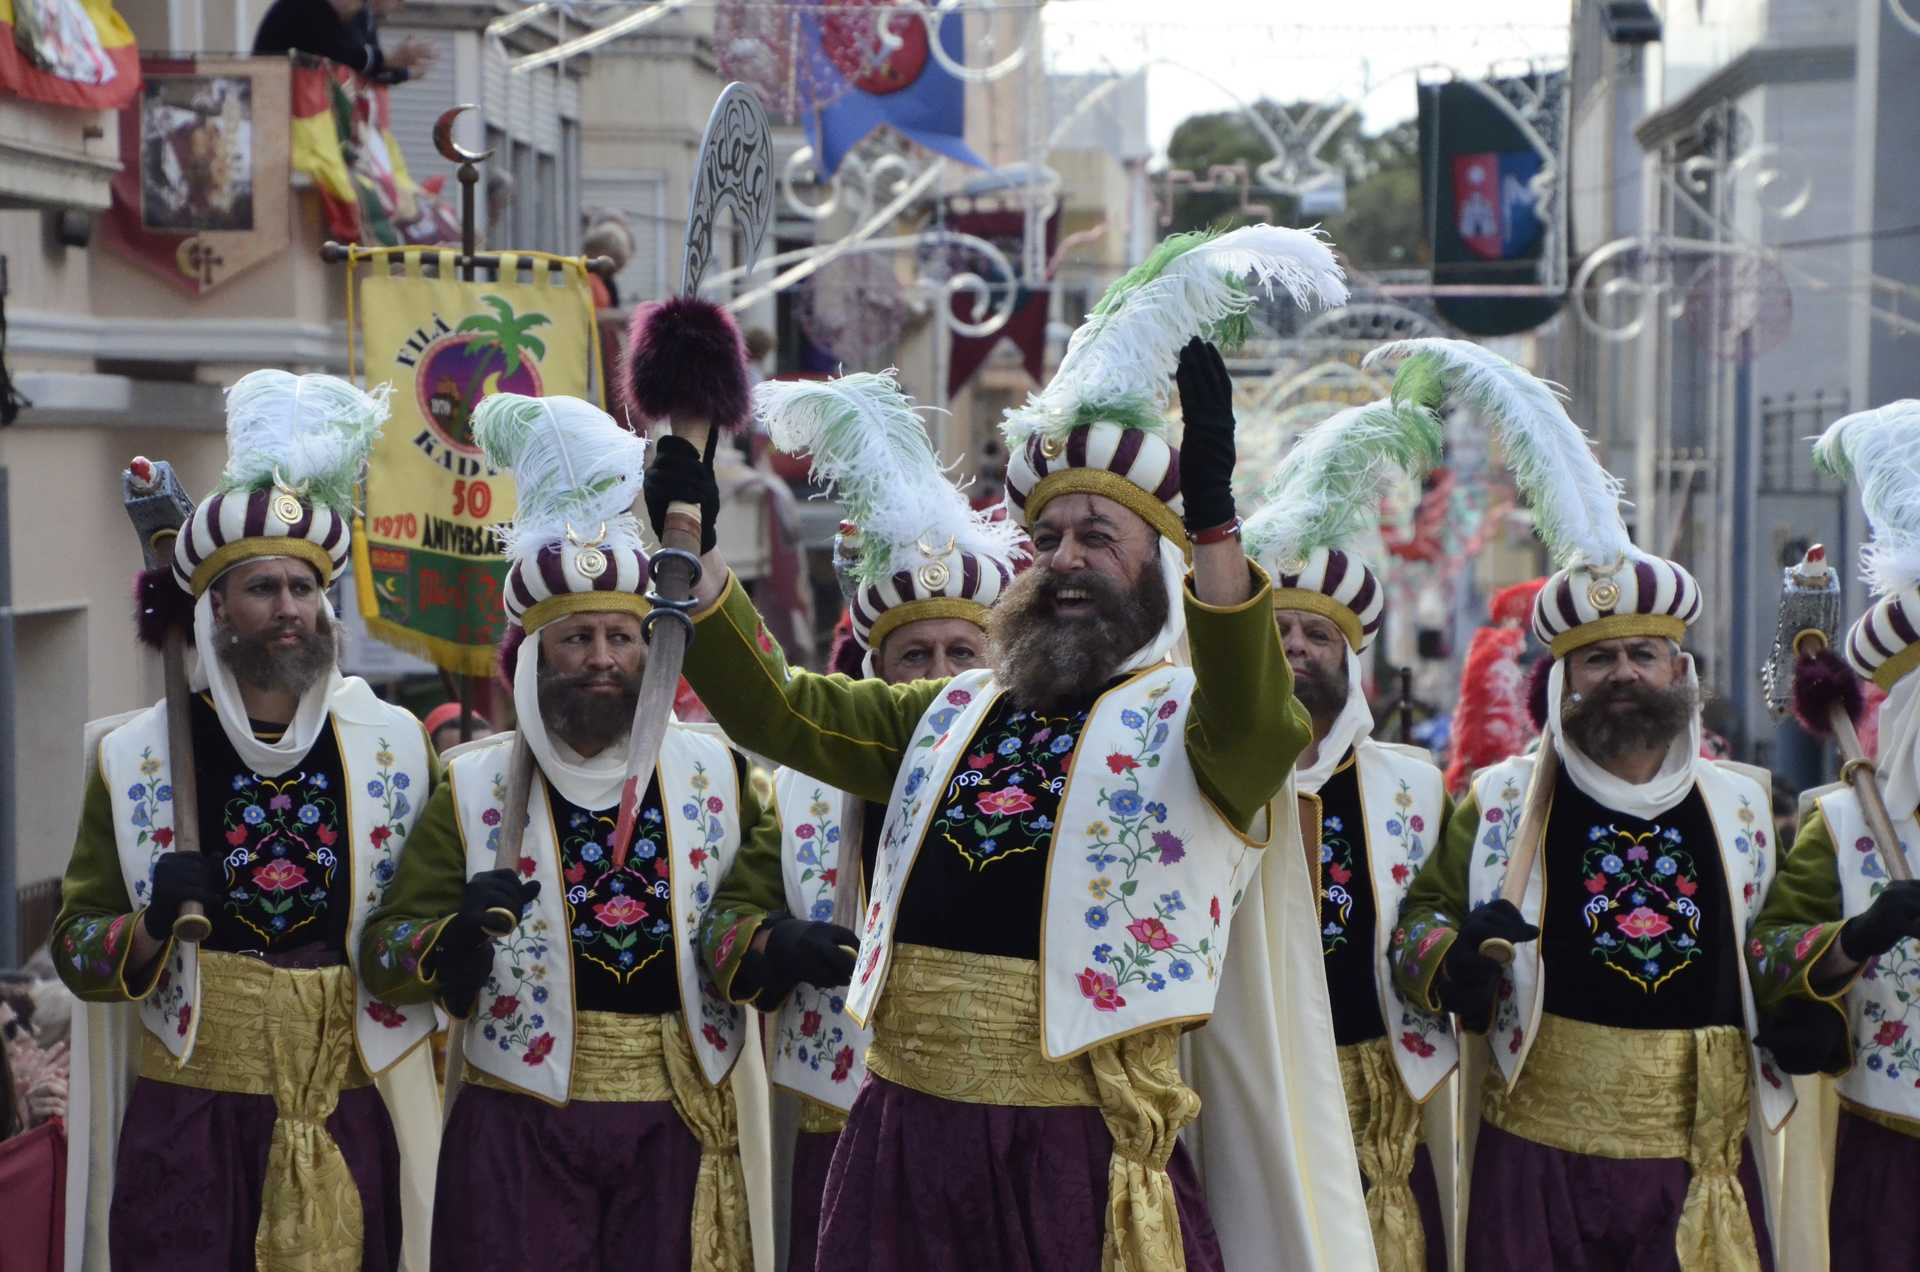 FESTIVAL OF MOORS AND CHRISTIANS IN HONOUR OF SAINT BONIFACIO